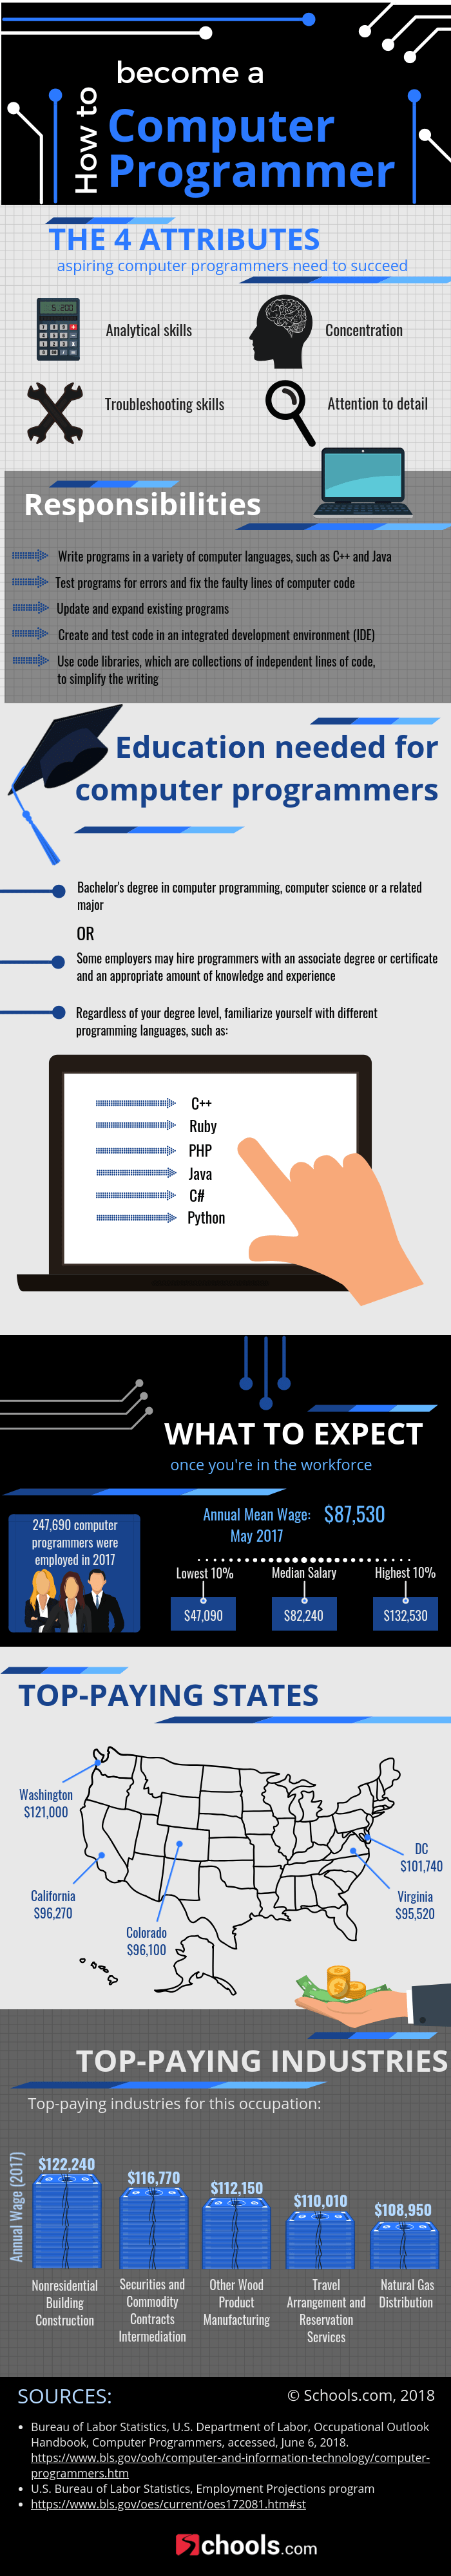 How to Build a Career as a Computer Programmer - Infographic